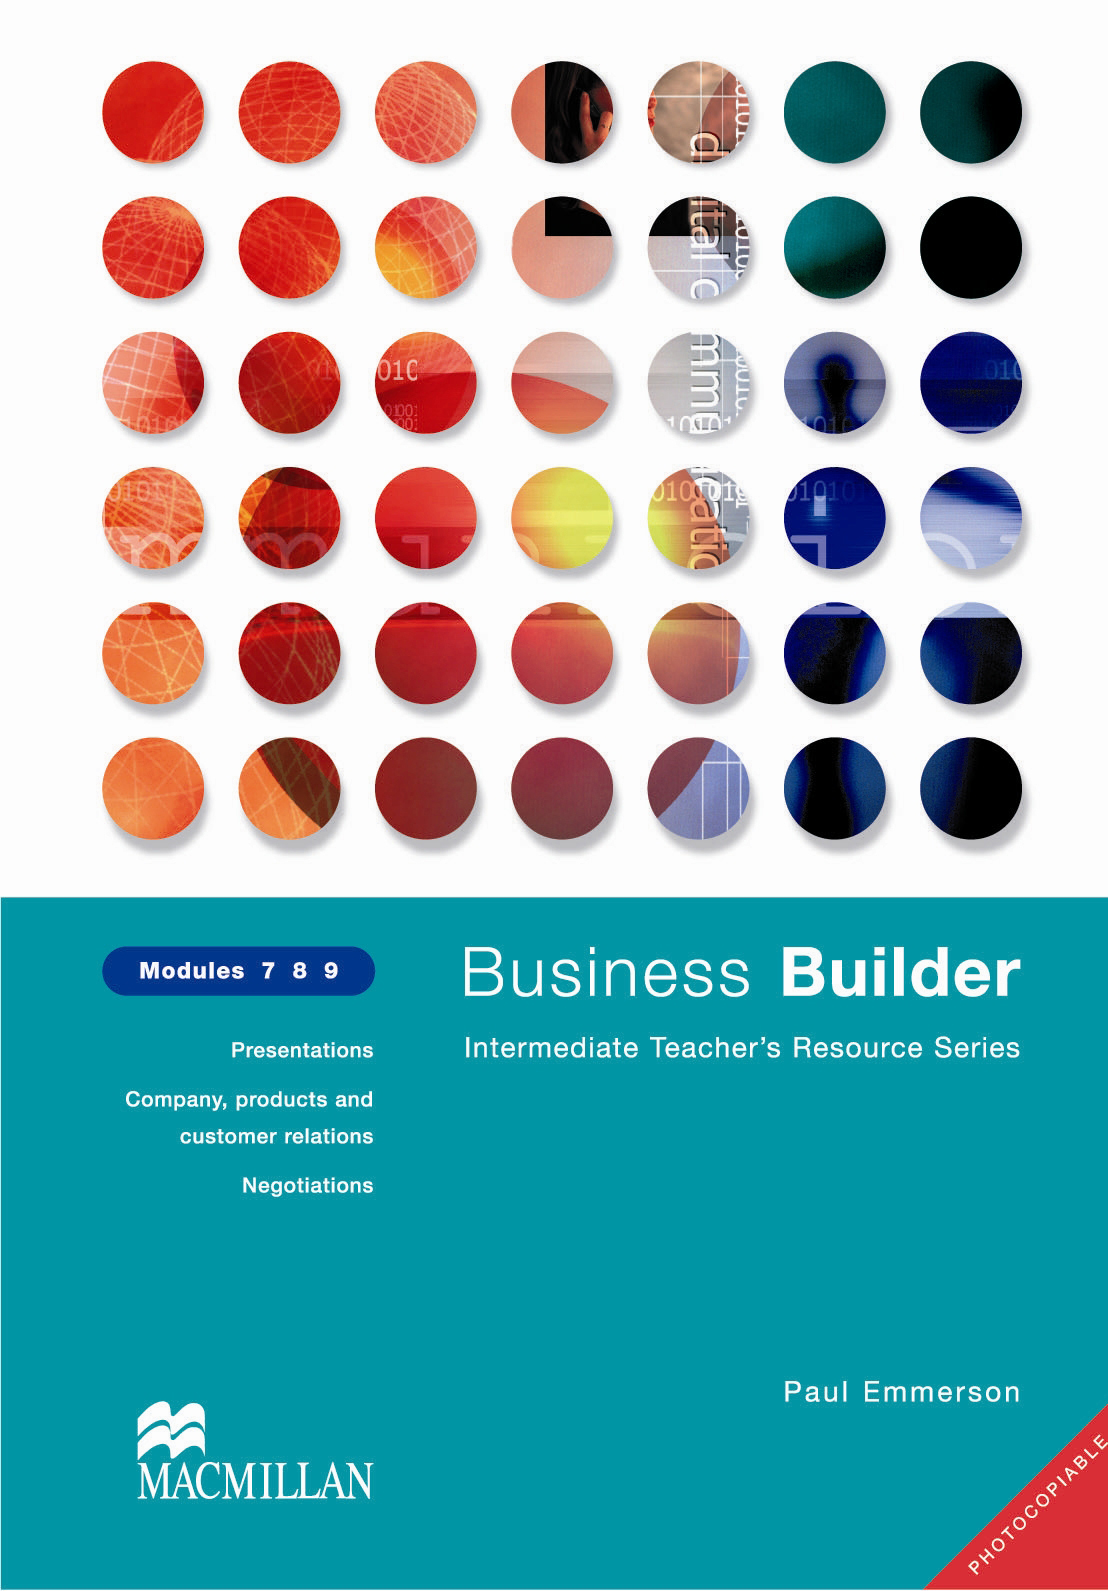 Business Builder Modules 7 - 9